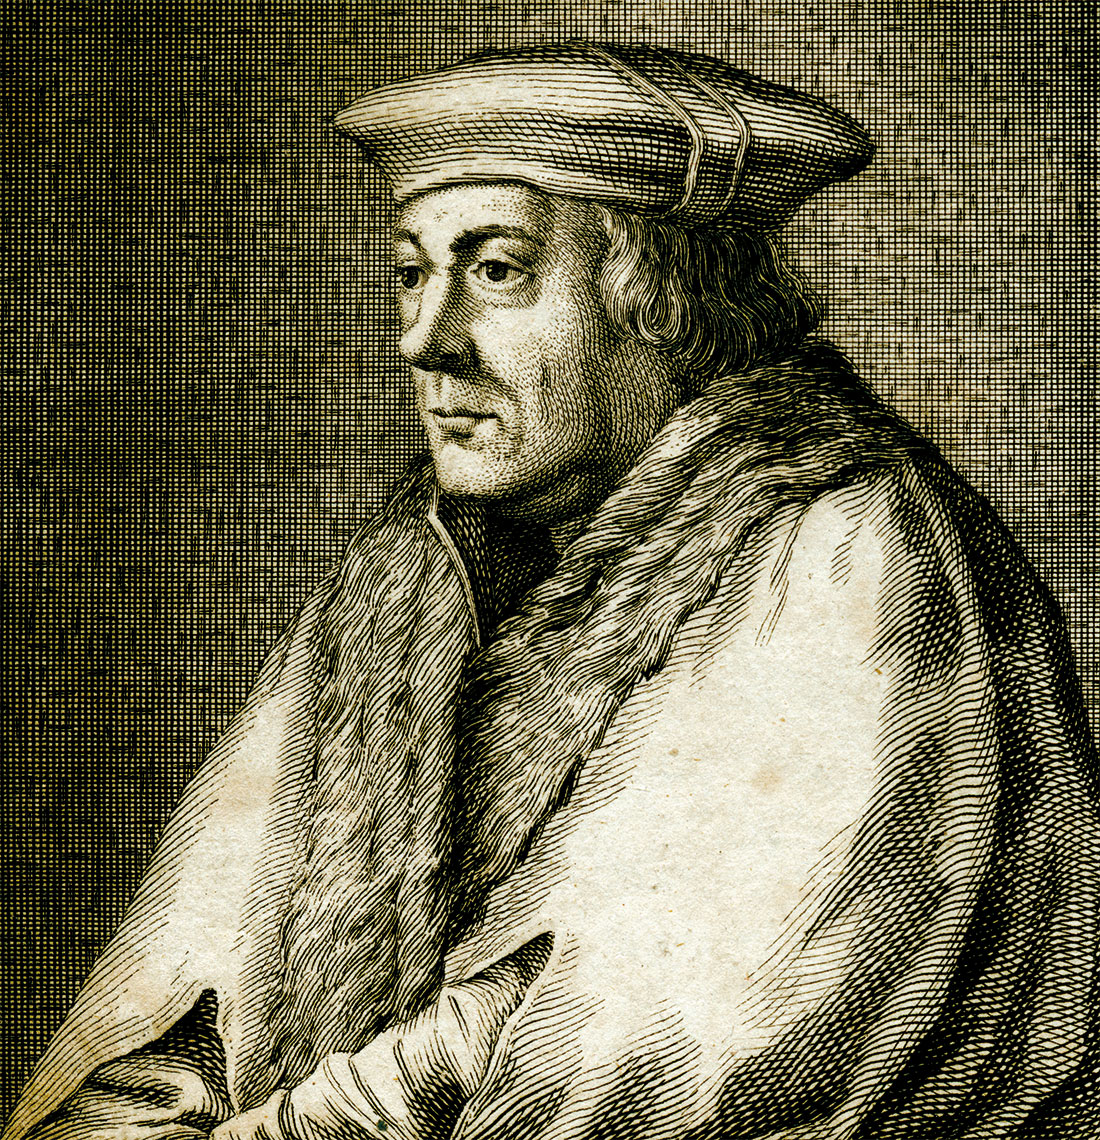 Brewer's son: Thomas Cromwell, after Hans Holbein the Younger, engraving, 17th century.